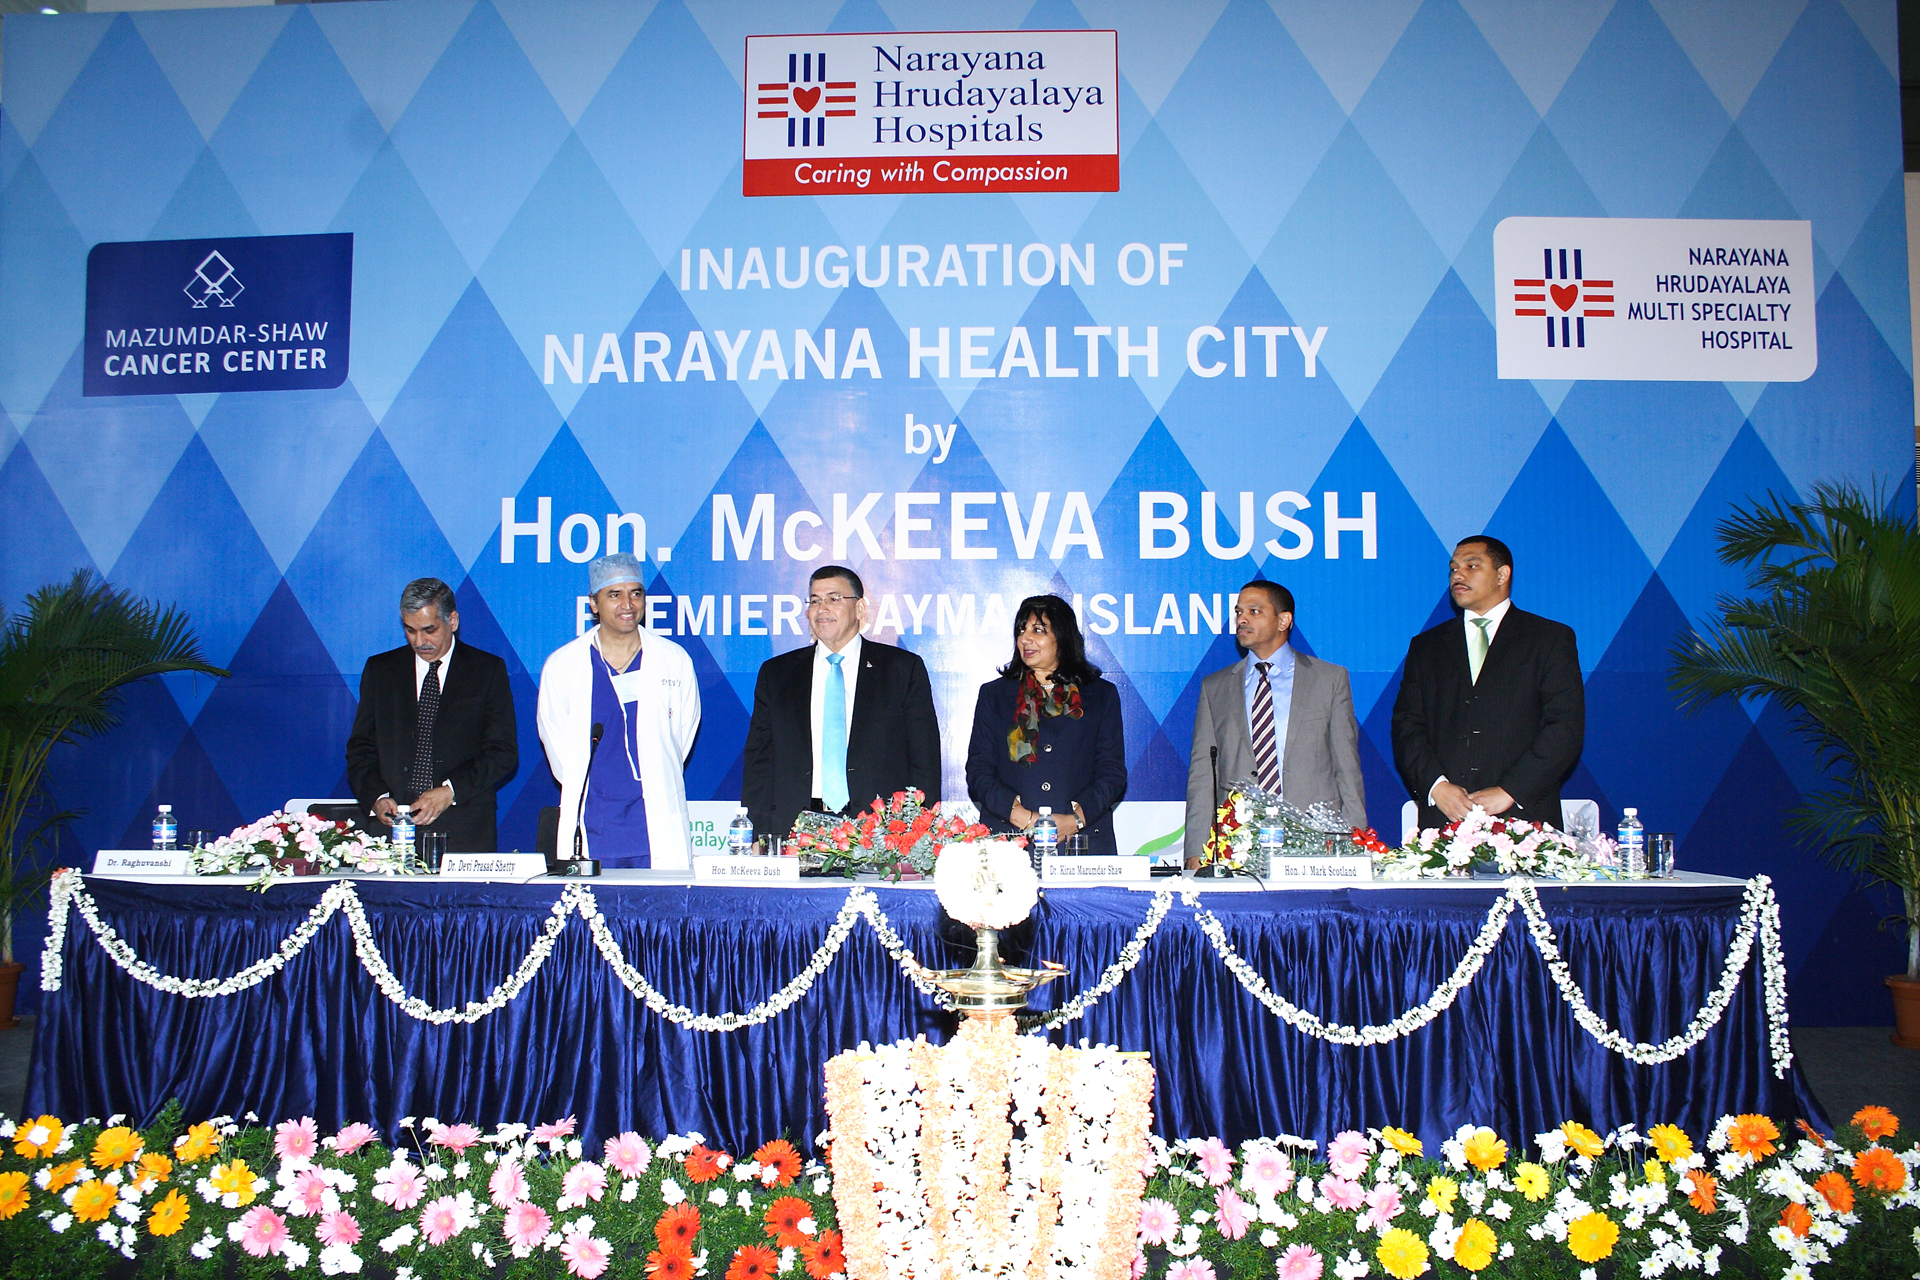 Inauguration of Health City Cayman Islands